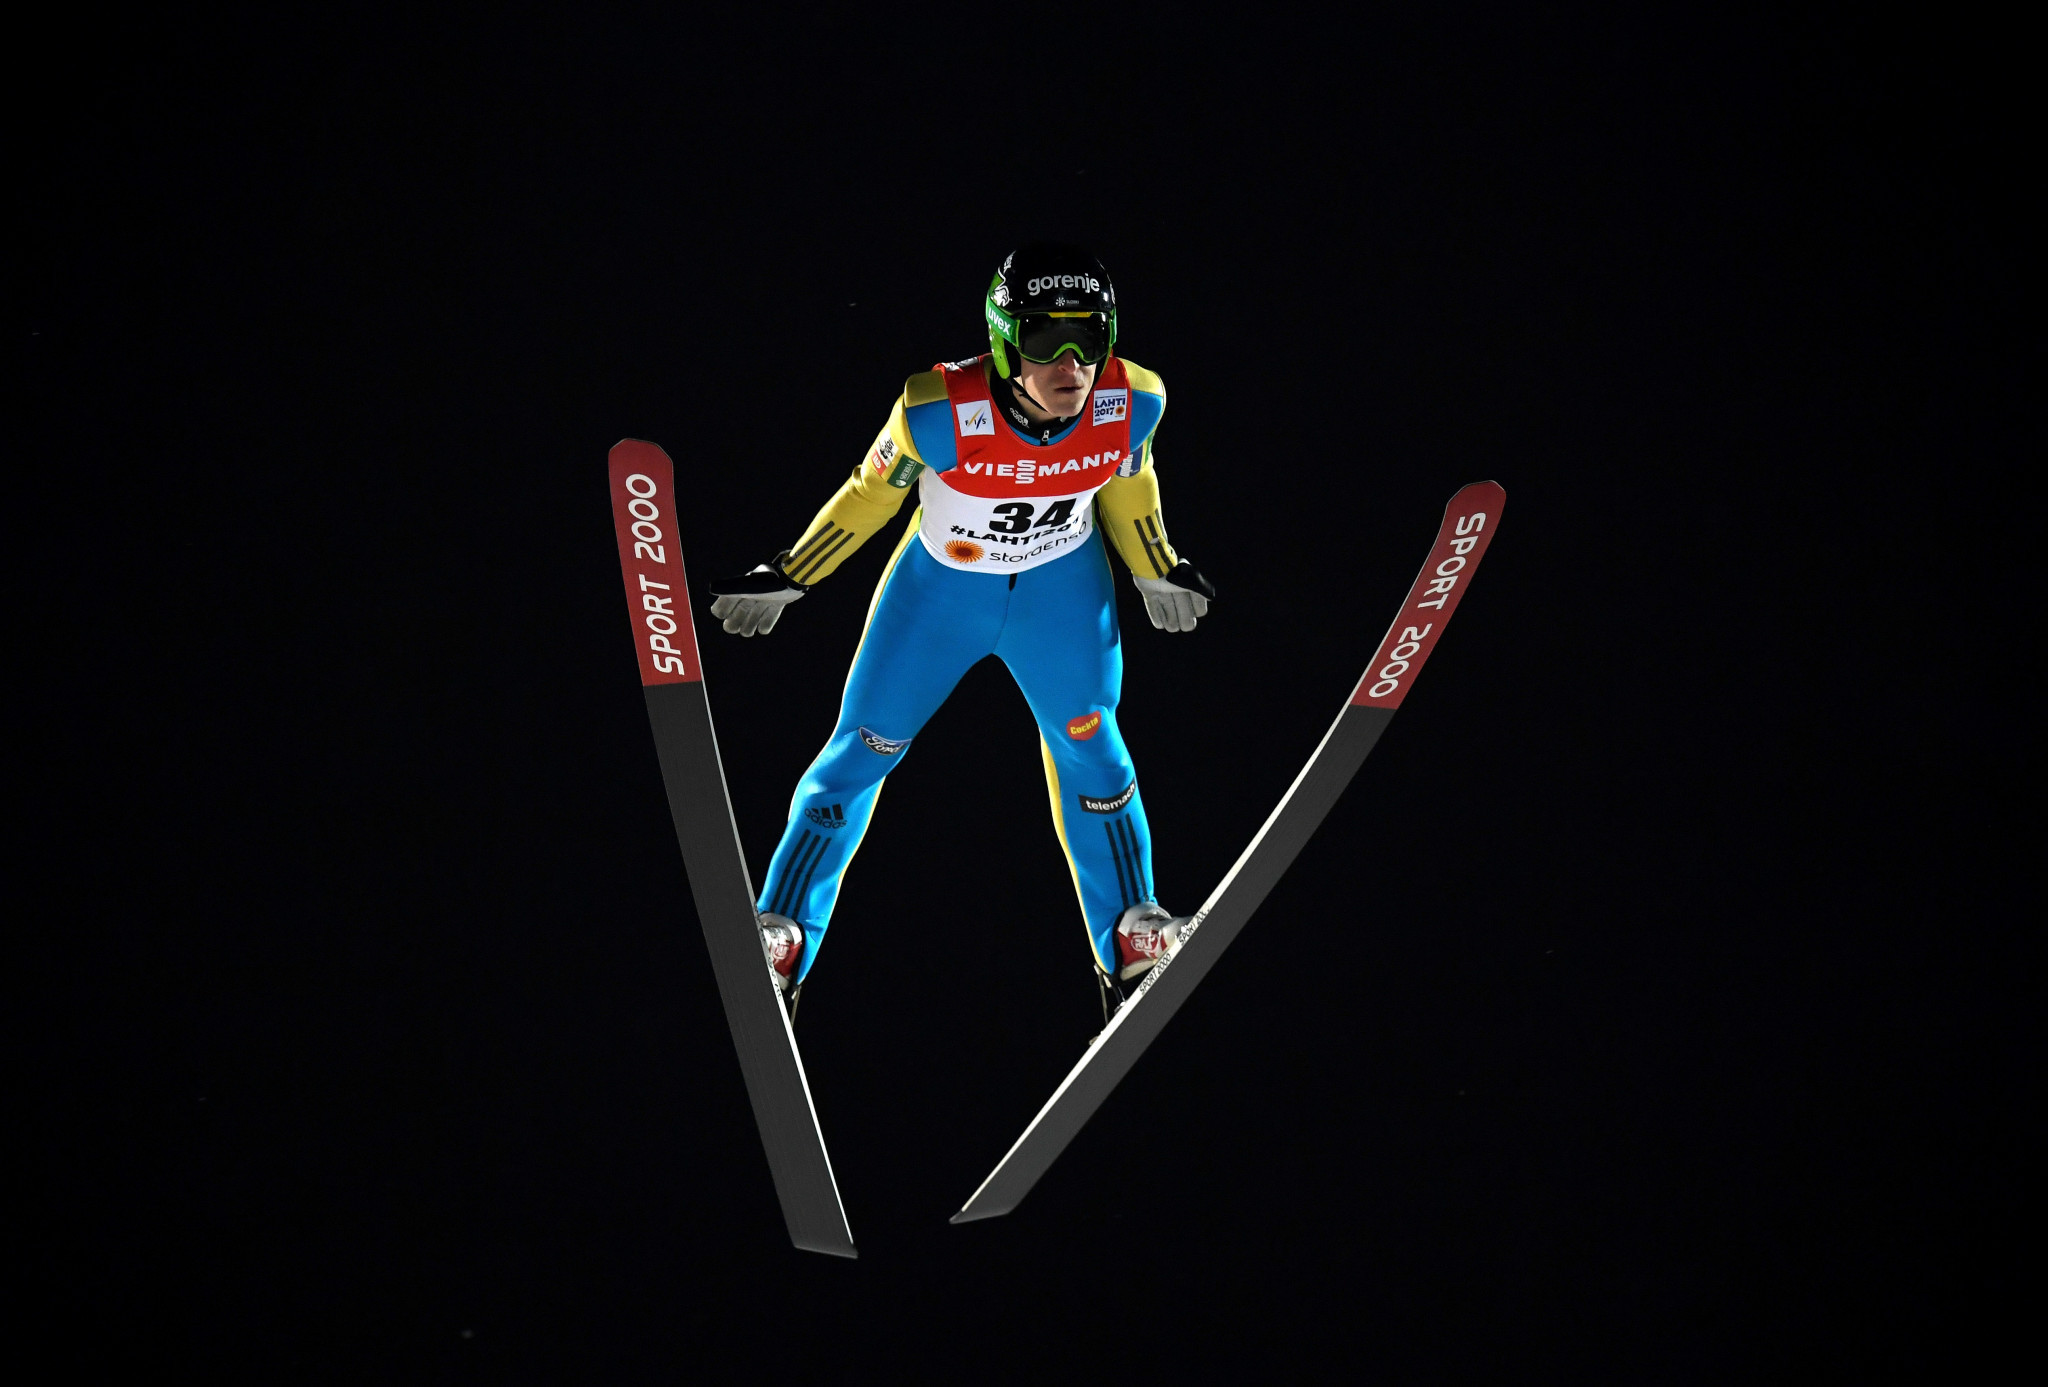 Slovenian ski jumper Tepeš announces retirement